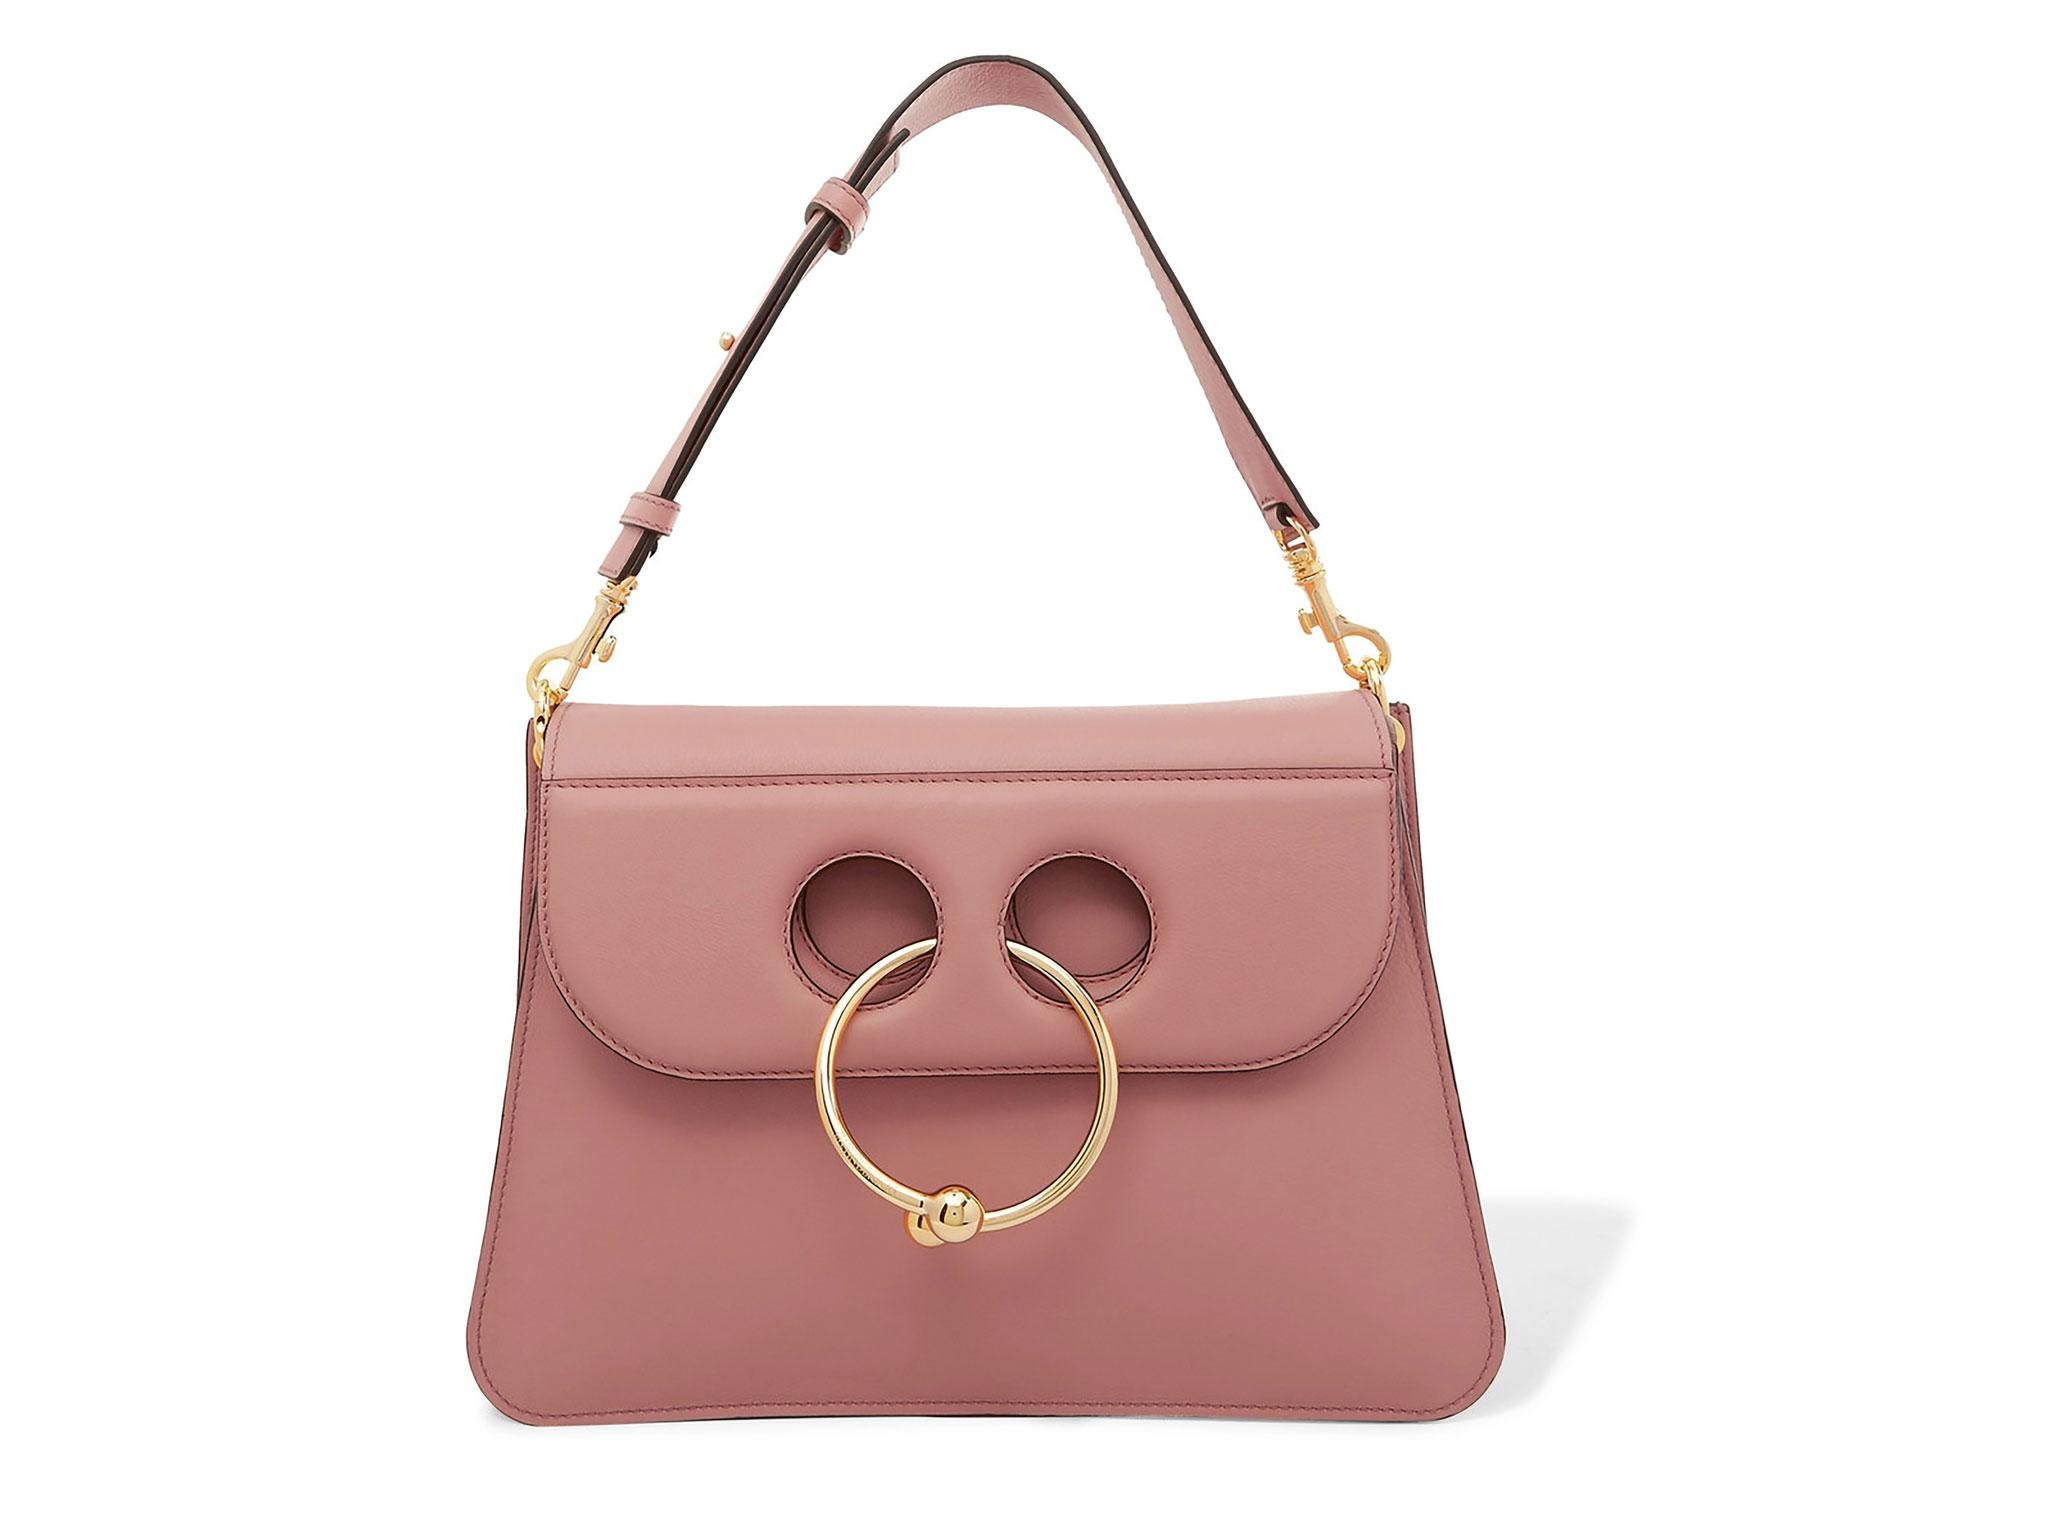 b6b2d5f08b7 J.W.Anderson Pierce Medium Leather Shoulder Bag  £1095, Net-a-Porter